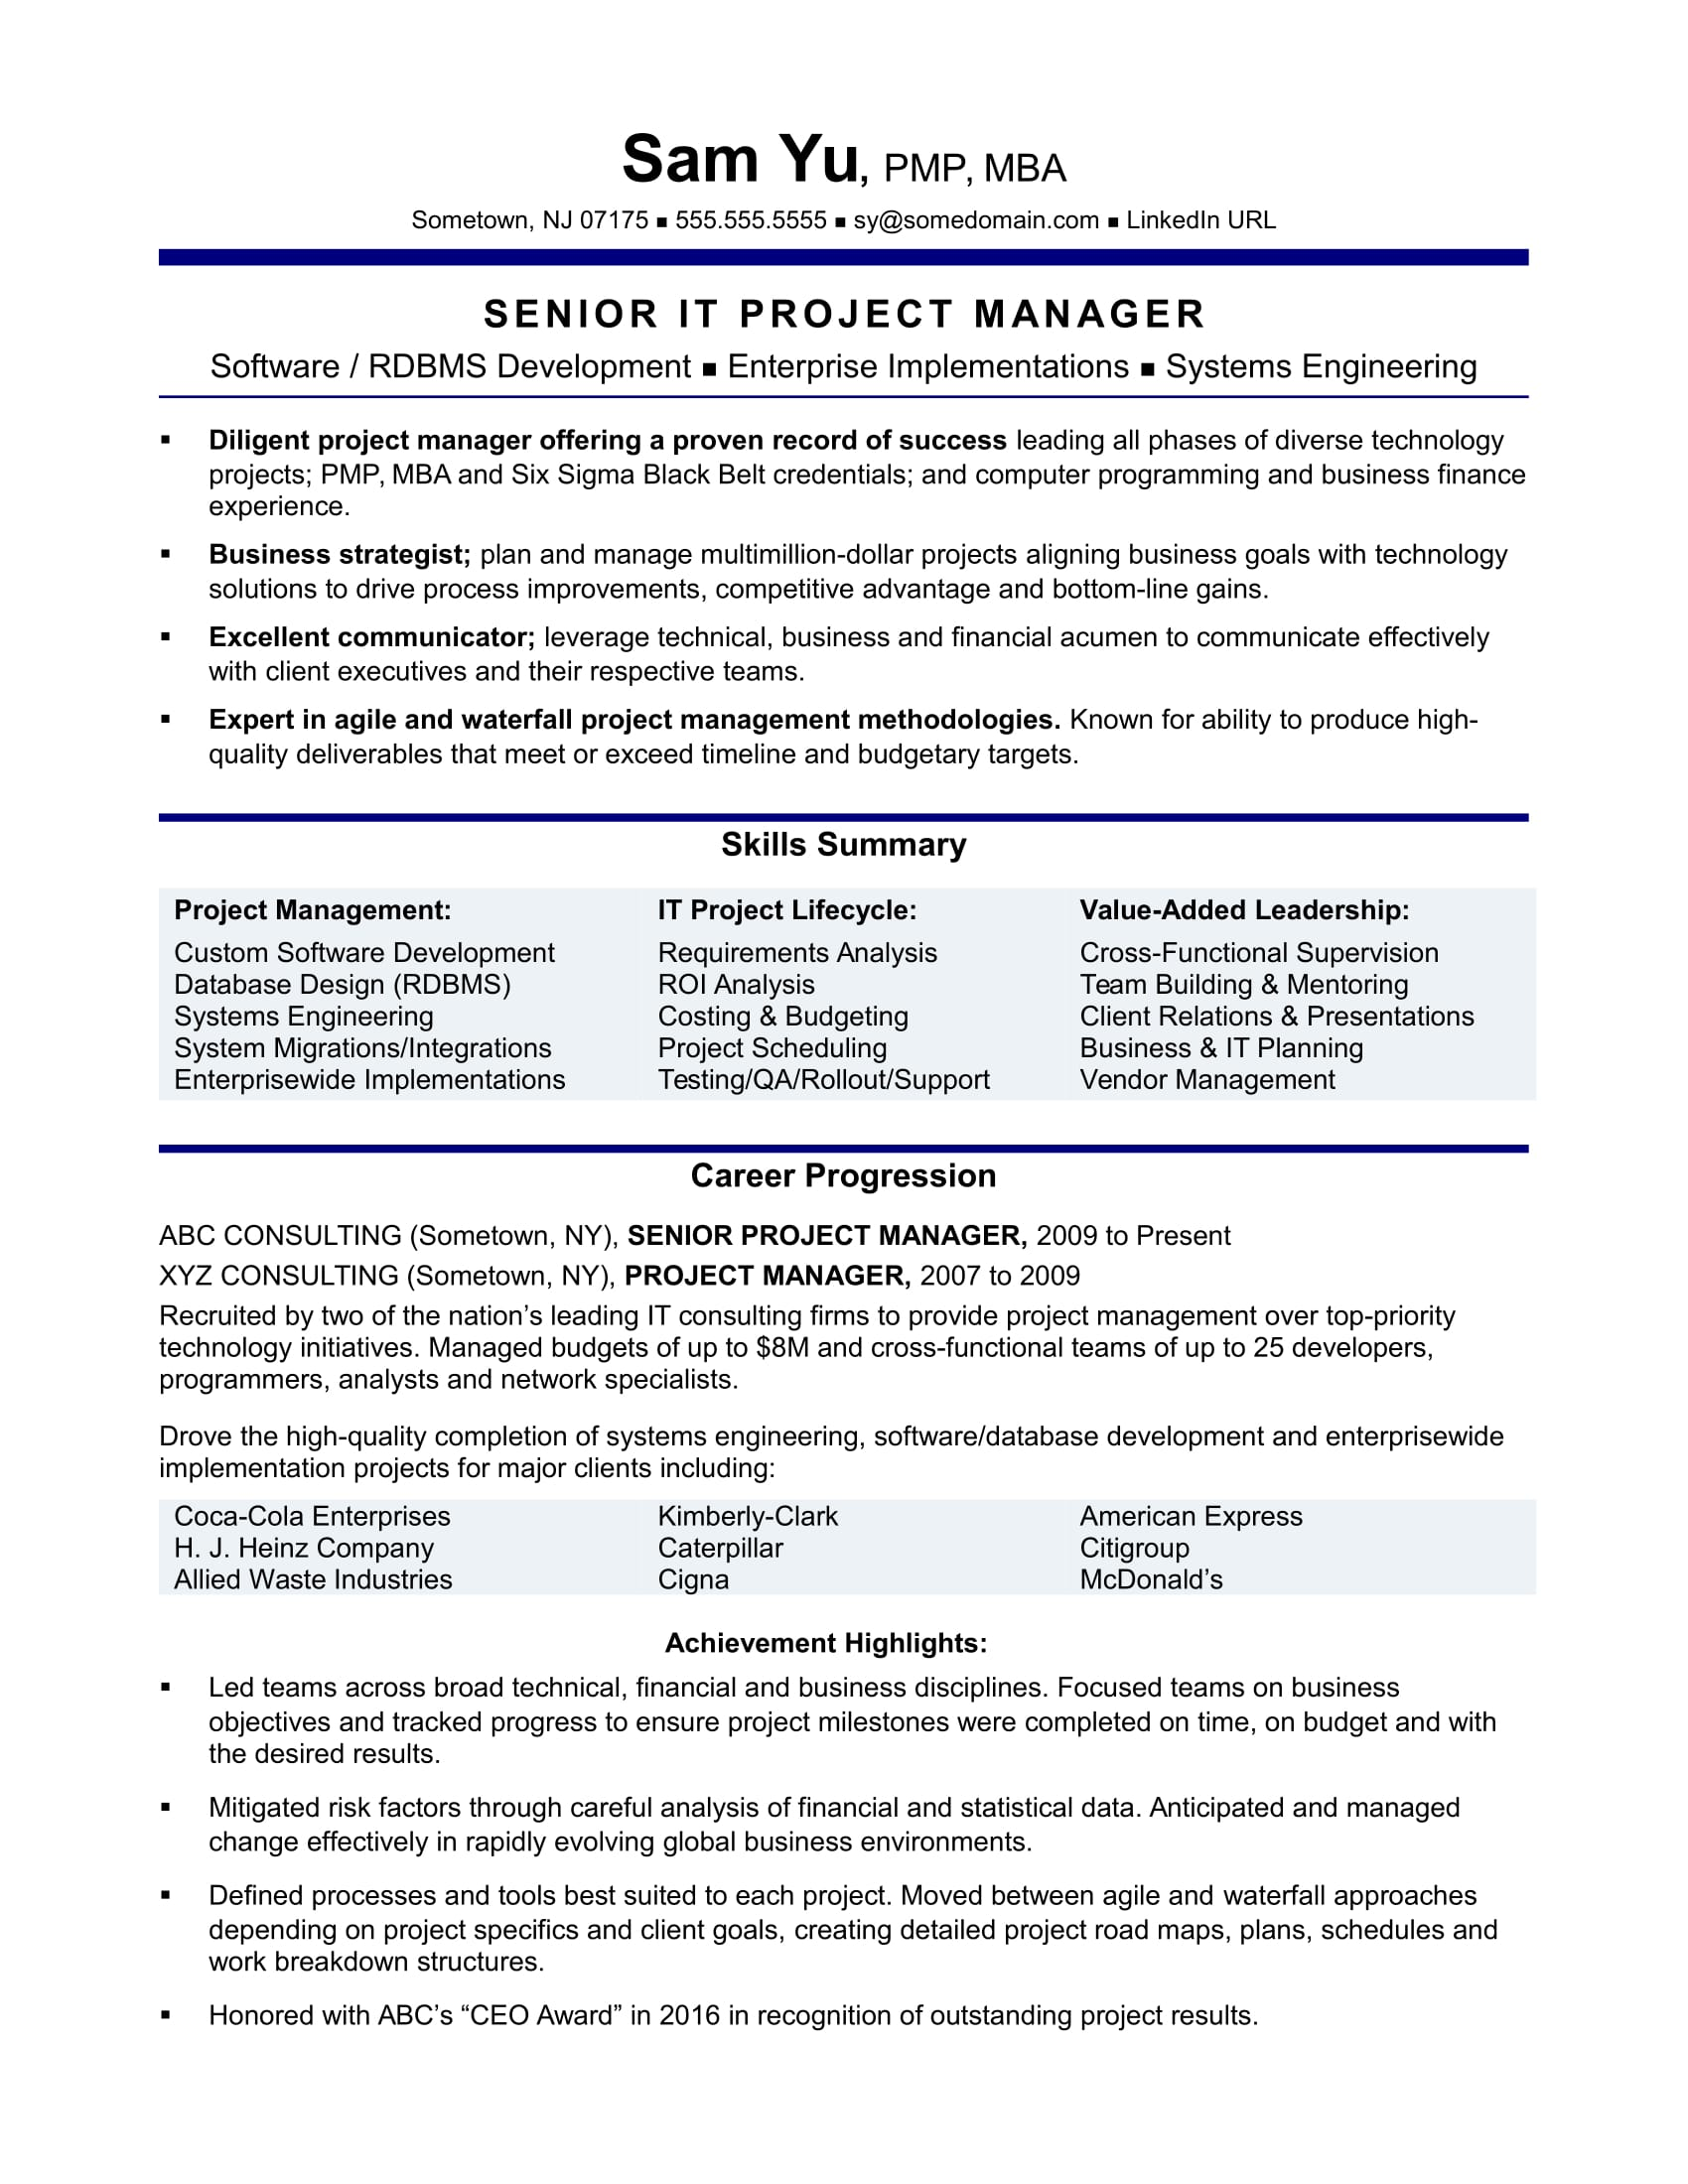 Elegant Experienced IT Project Manager Resume Sample Pertaining To Resume Project Manager